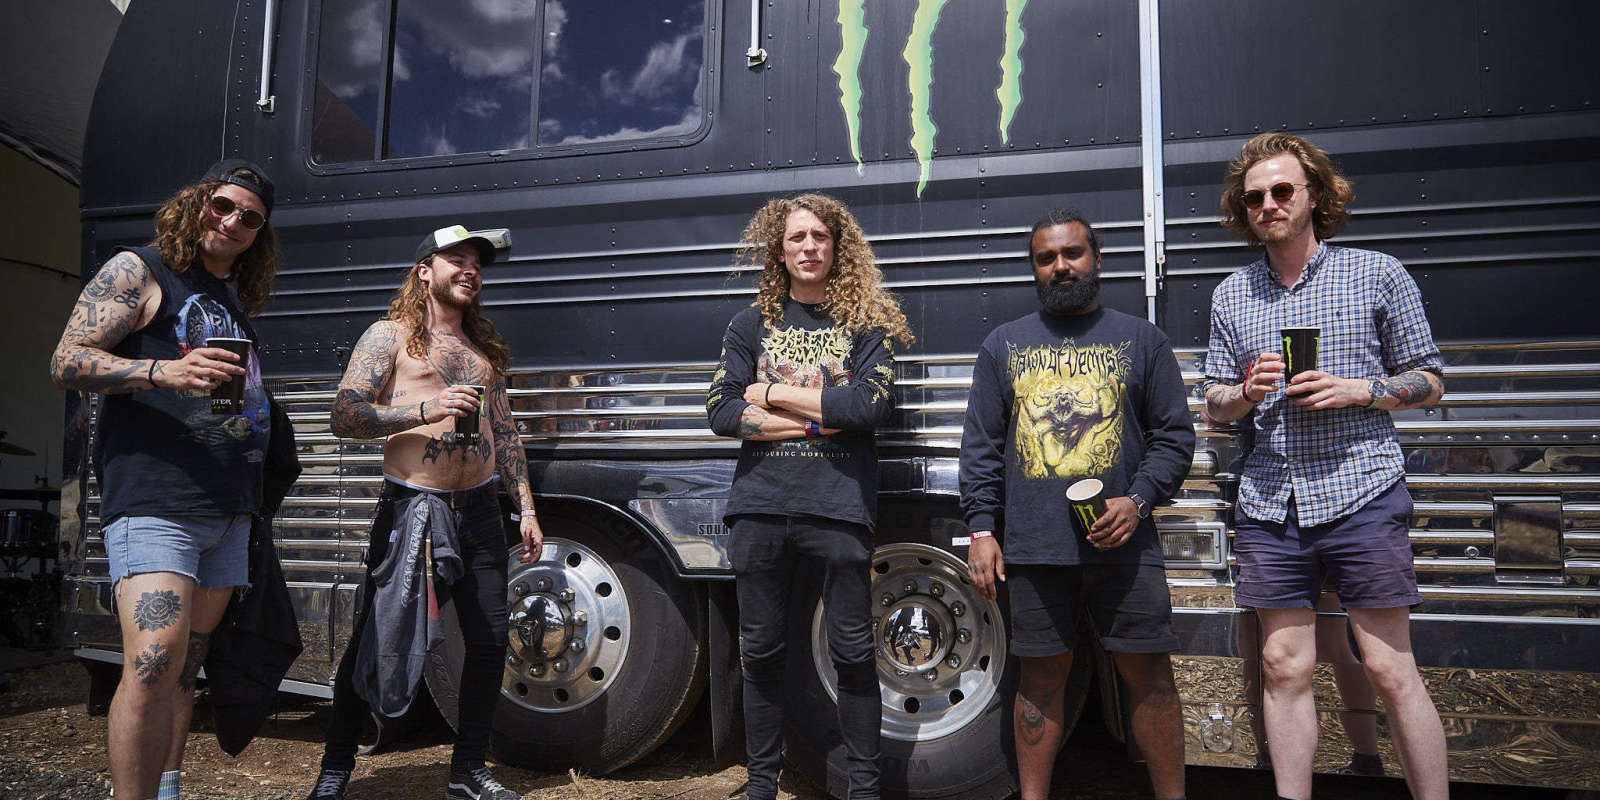 Baest band playing at Copenhell music festival in Denmark.